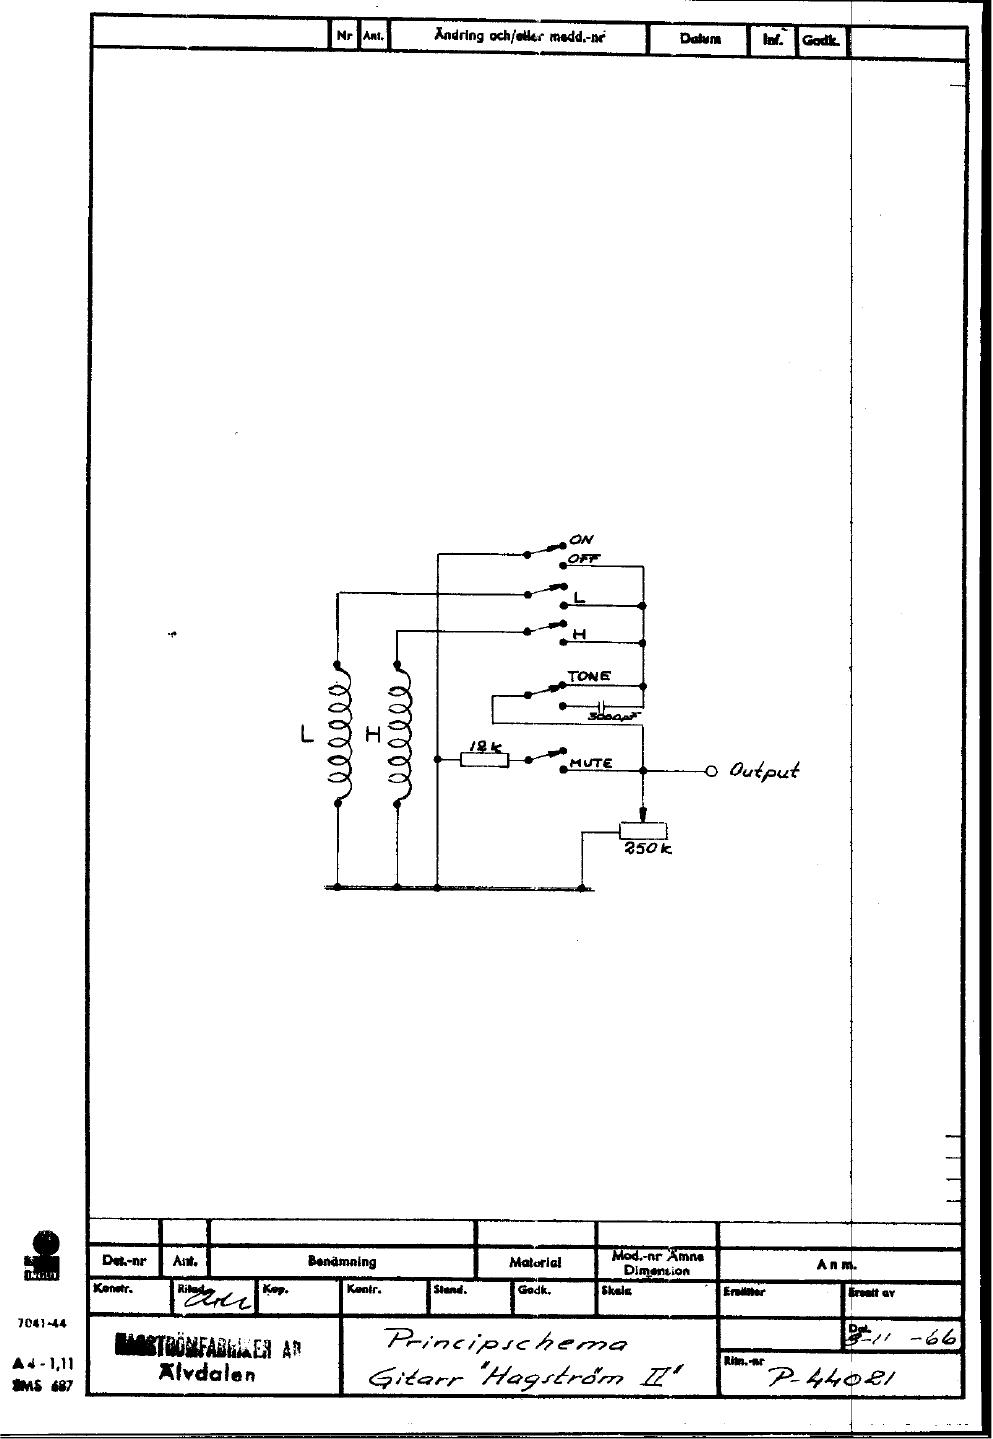 hagstrom swede wiring diagram in parallel schematics ii 1966 era colour courtesy of eric bergman